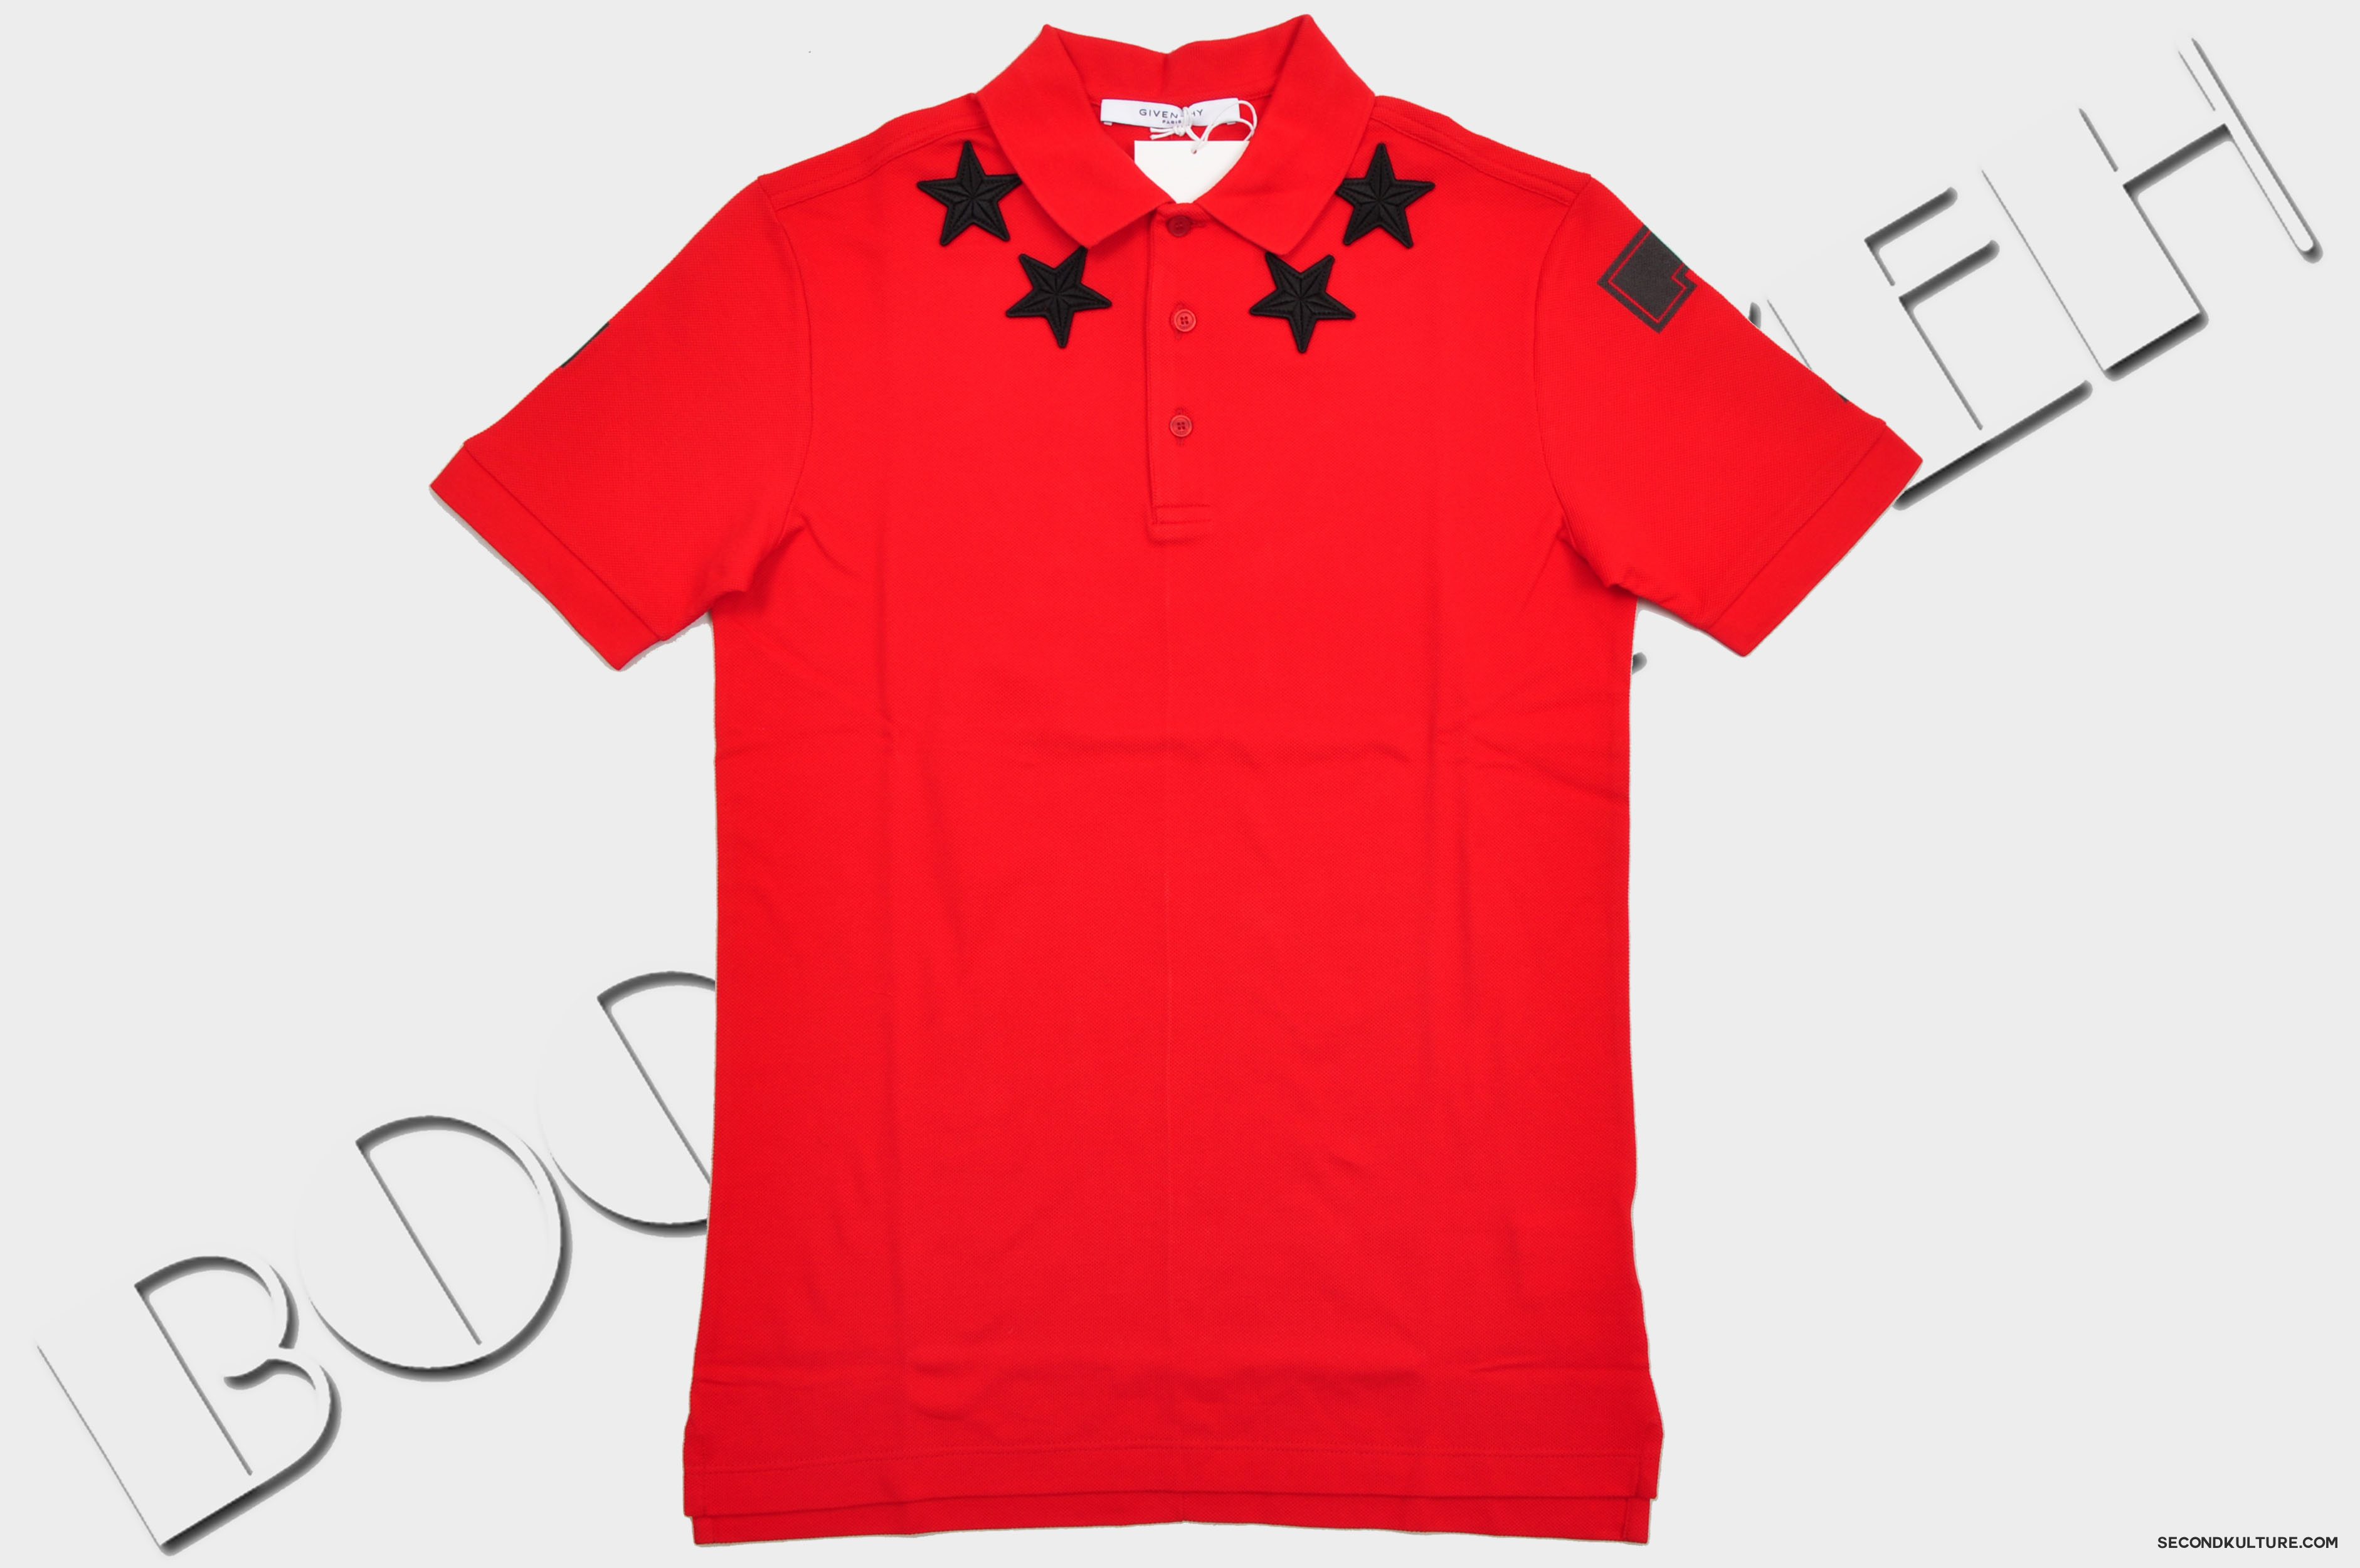 Givenchy-Red-Stars-Neckline-Embroidery-Cuban-Fit-Polo-Shirt-Pre-Fall-2015-15F7102701